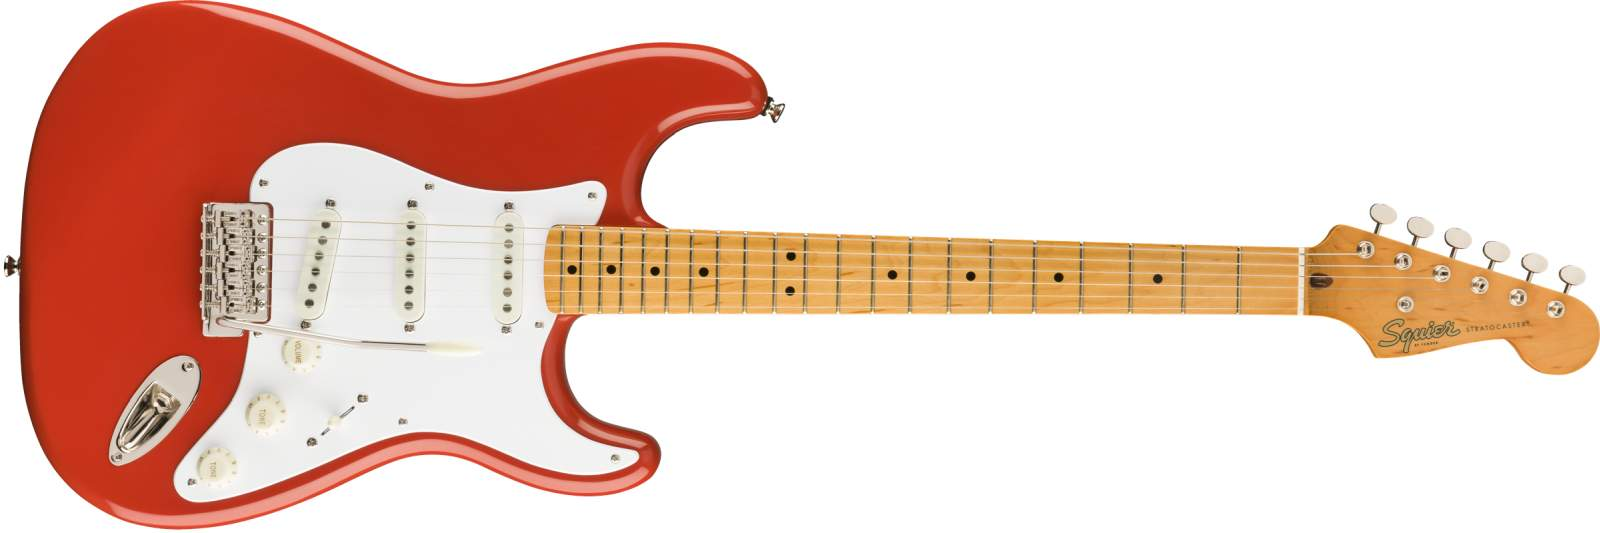 Squier Classic Vibe 50s Stratocaster MN FR